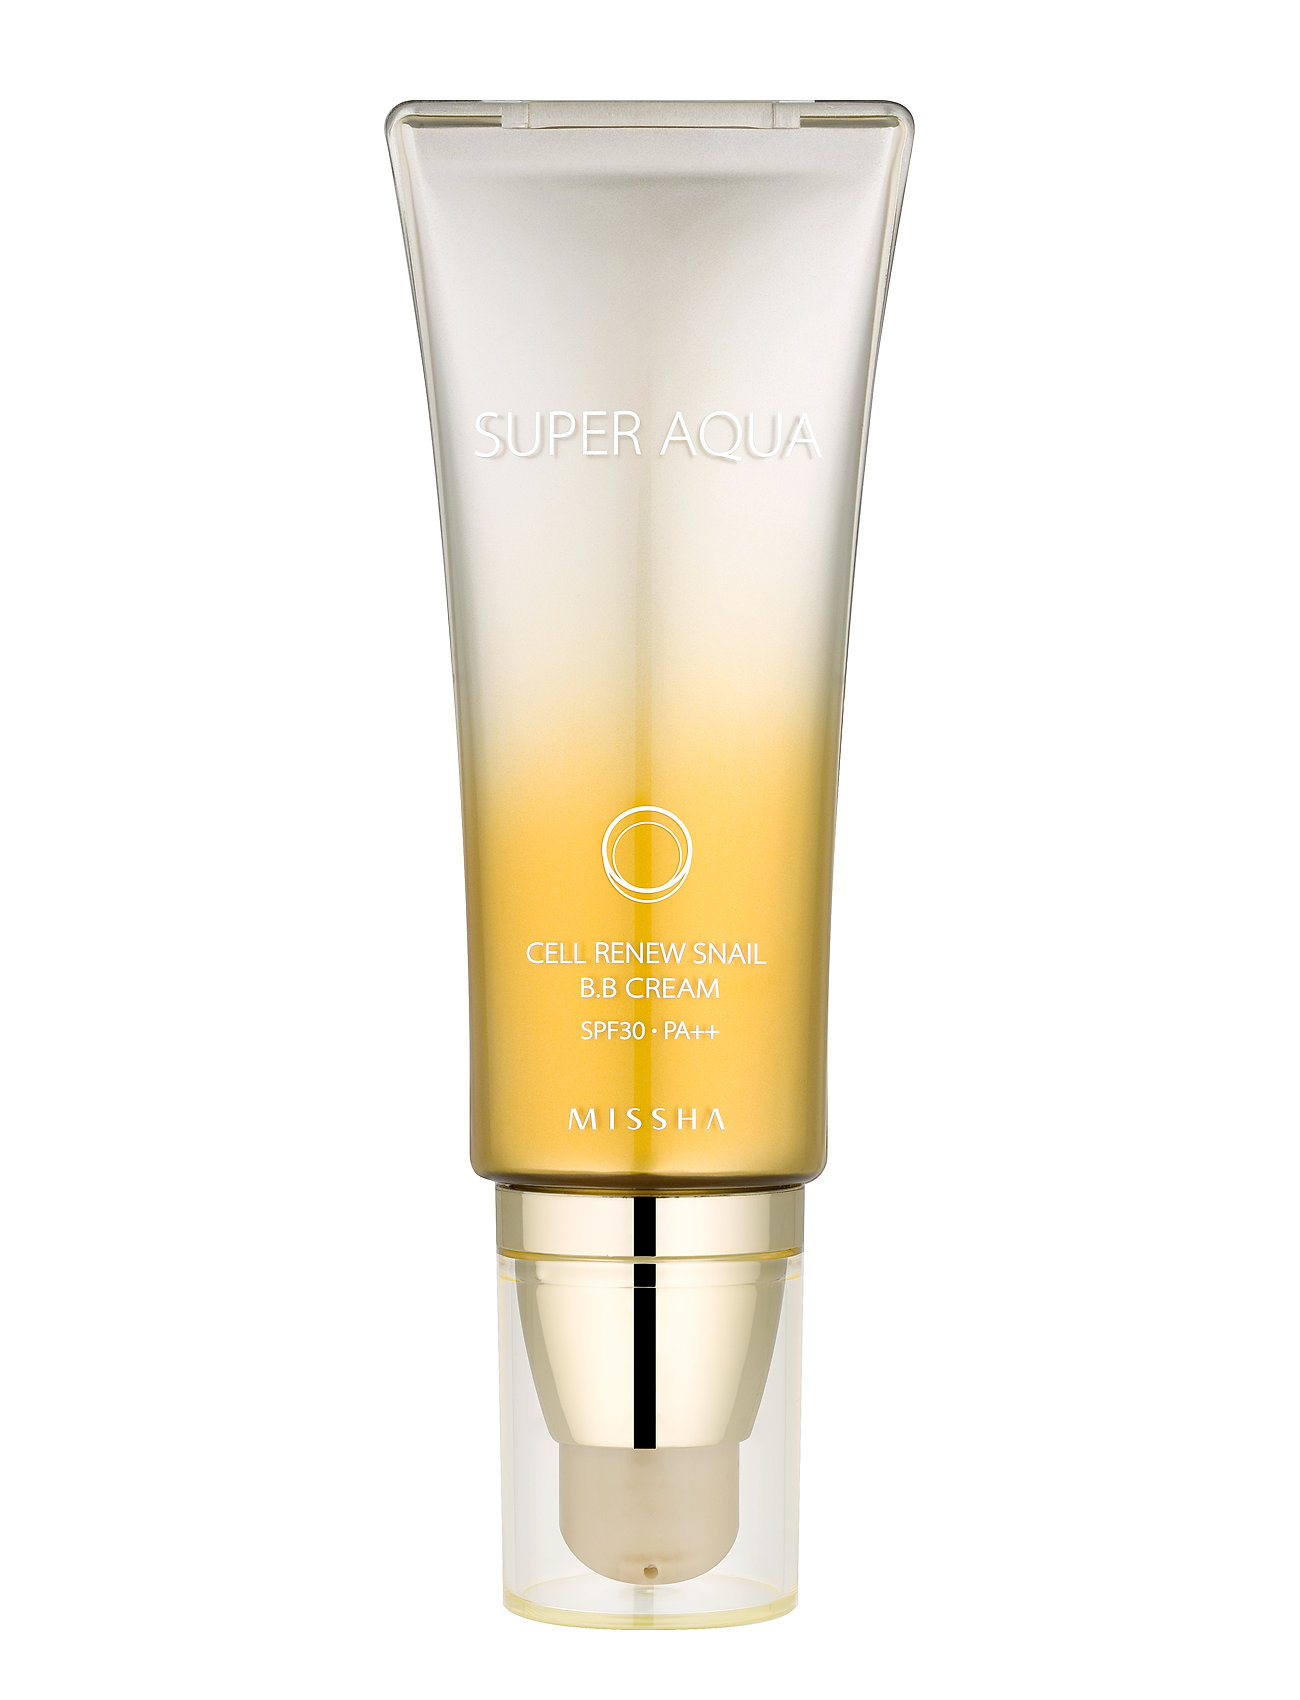 Missha Missha Super Aqua Cell Renew Snail BB Cream SPF30/PA++ - NATURAL BEIGE